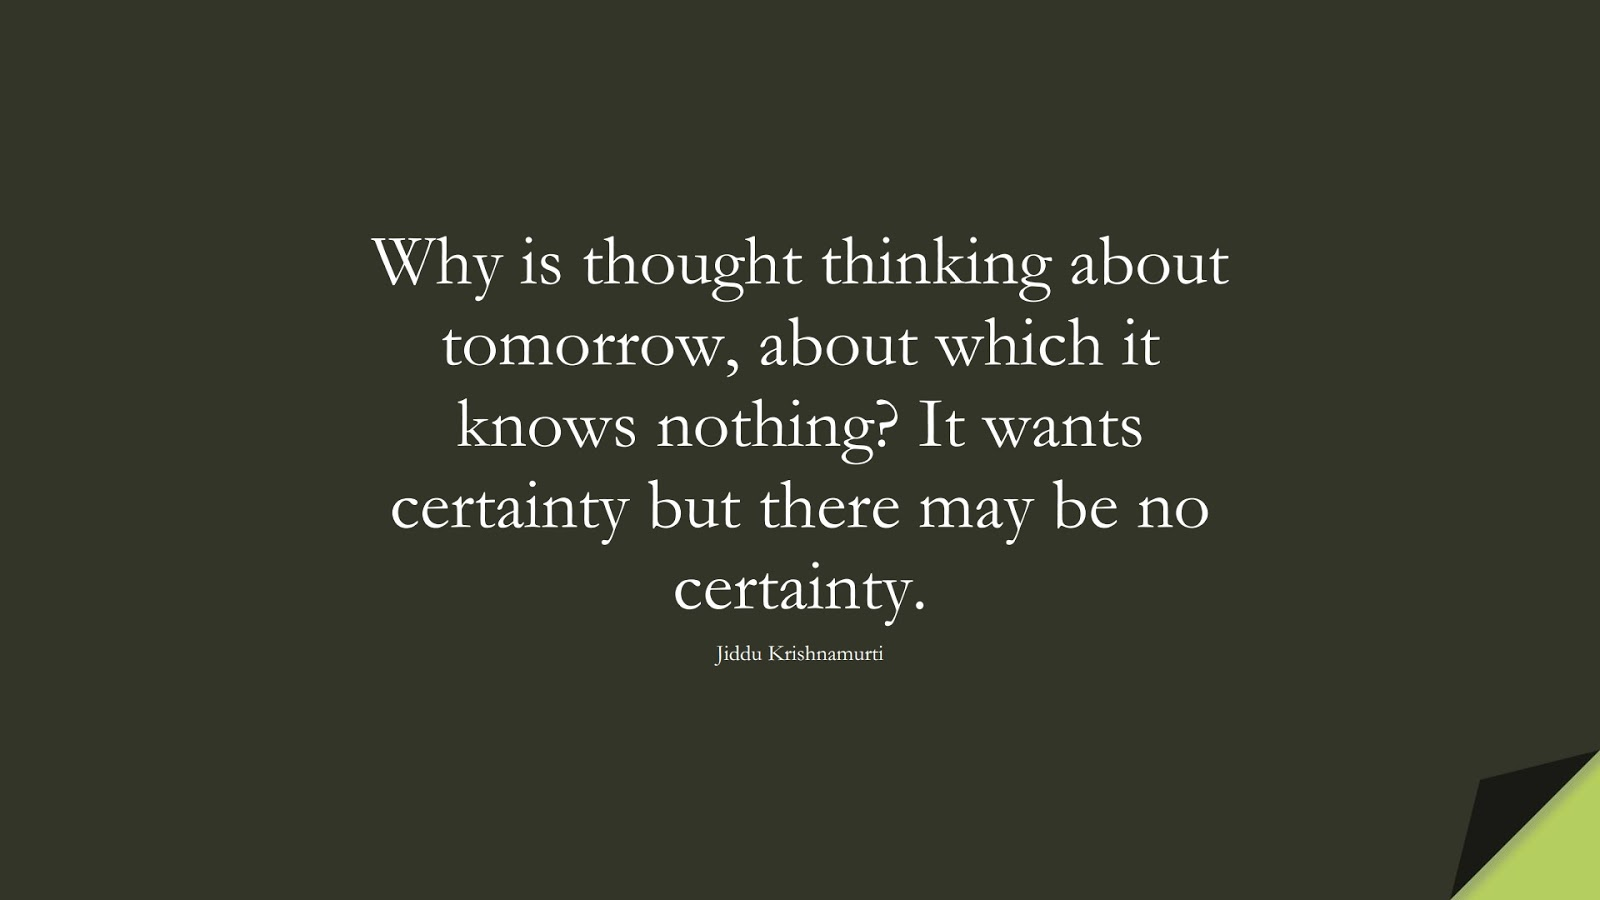 Why is thought thinking about tomorrow, about which it knows nothing? It wants certainty but there may be no certainty. (Jiddu Krishnamurti);  #AnxietyQuotes